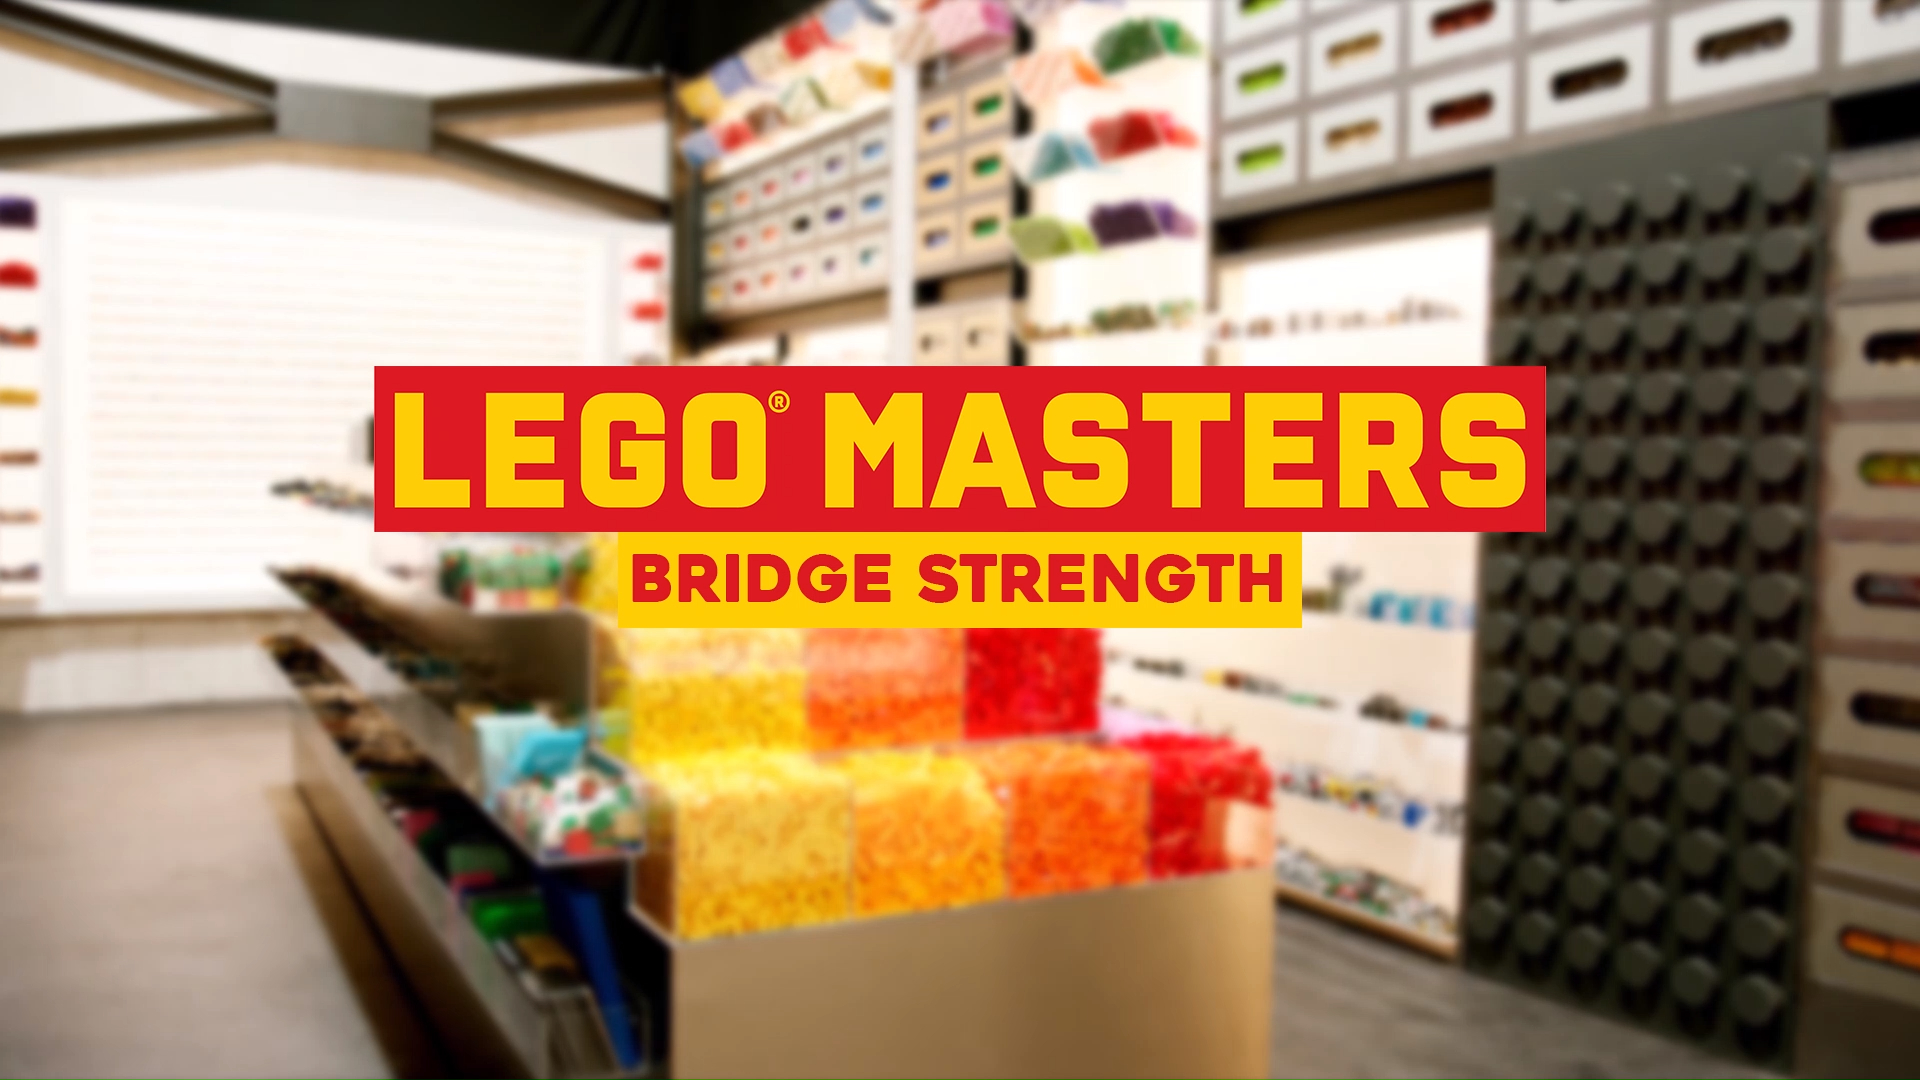 LEGO Tips, Tricks and Hacks: Bridge Strength